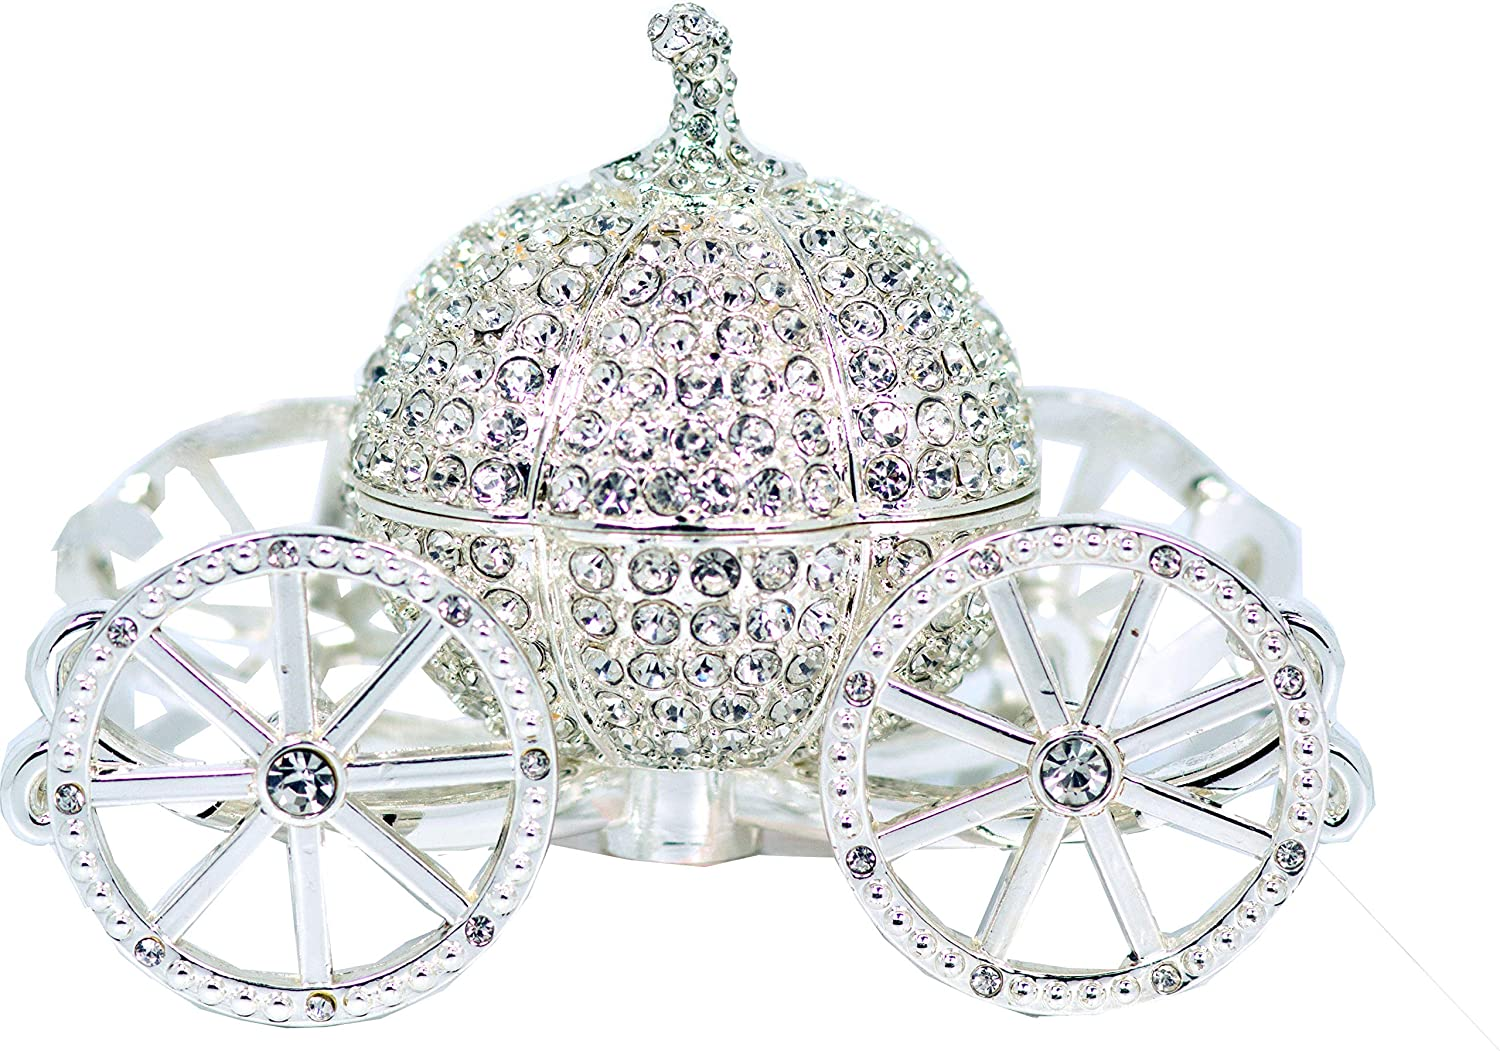 VI N VI Silver Rhinestone Princess Cinderella Crystal Pumpkin Carriage Trinket Box, Jewelry Box/Hand Painted Collectible Figurine and Decorative Jewelry Display, Holder, and Organizer